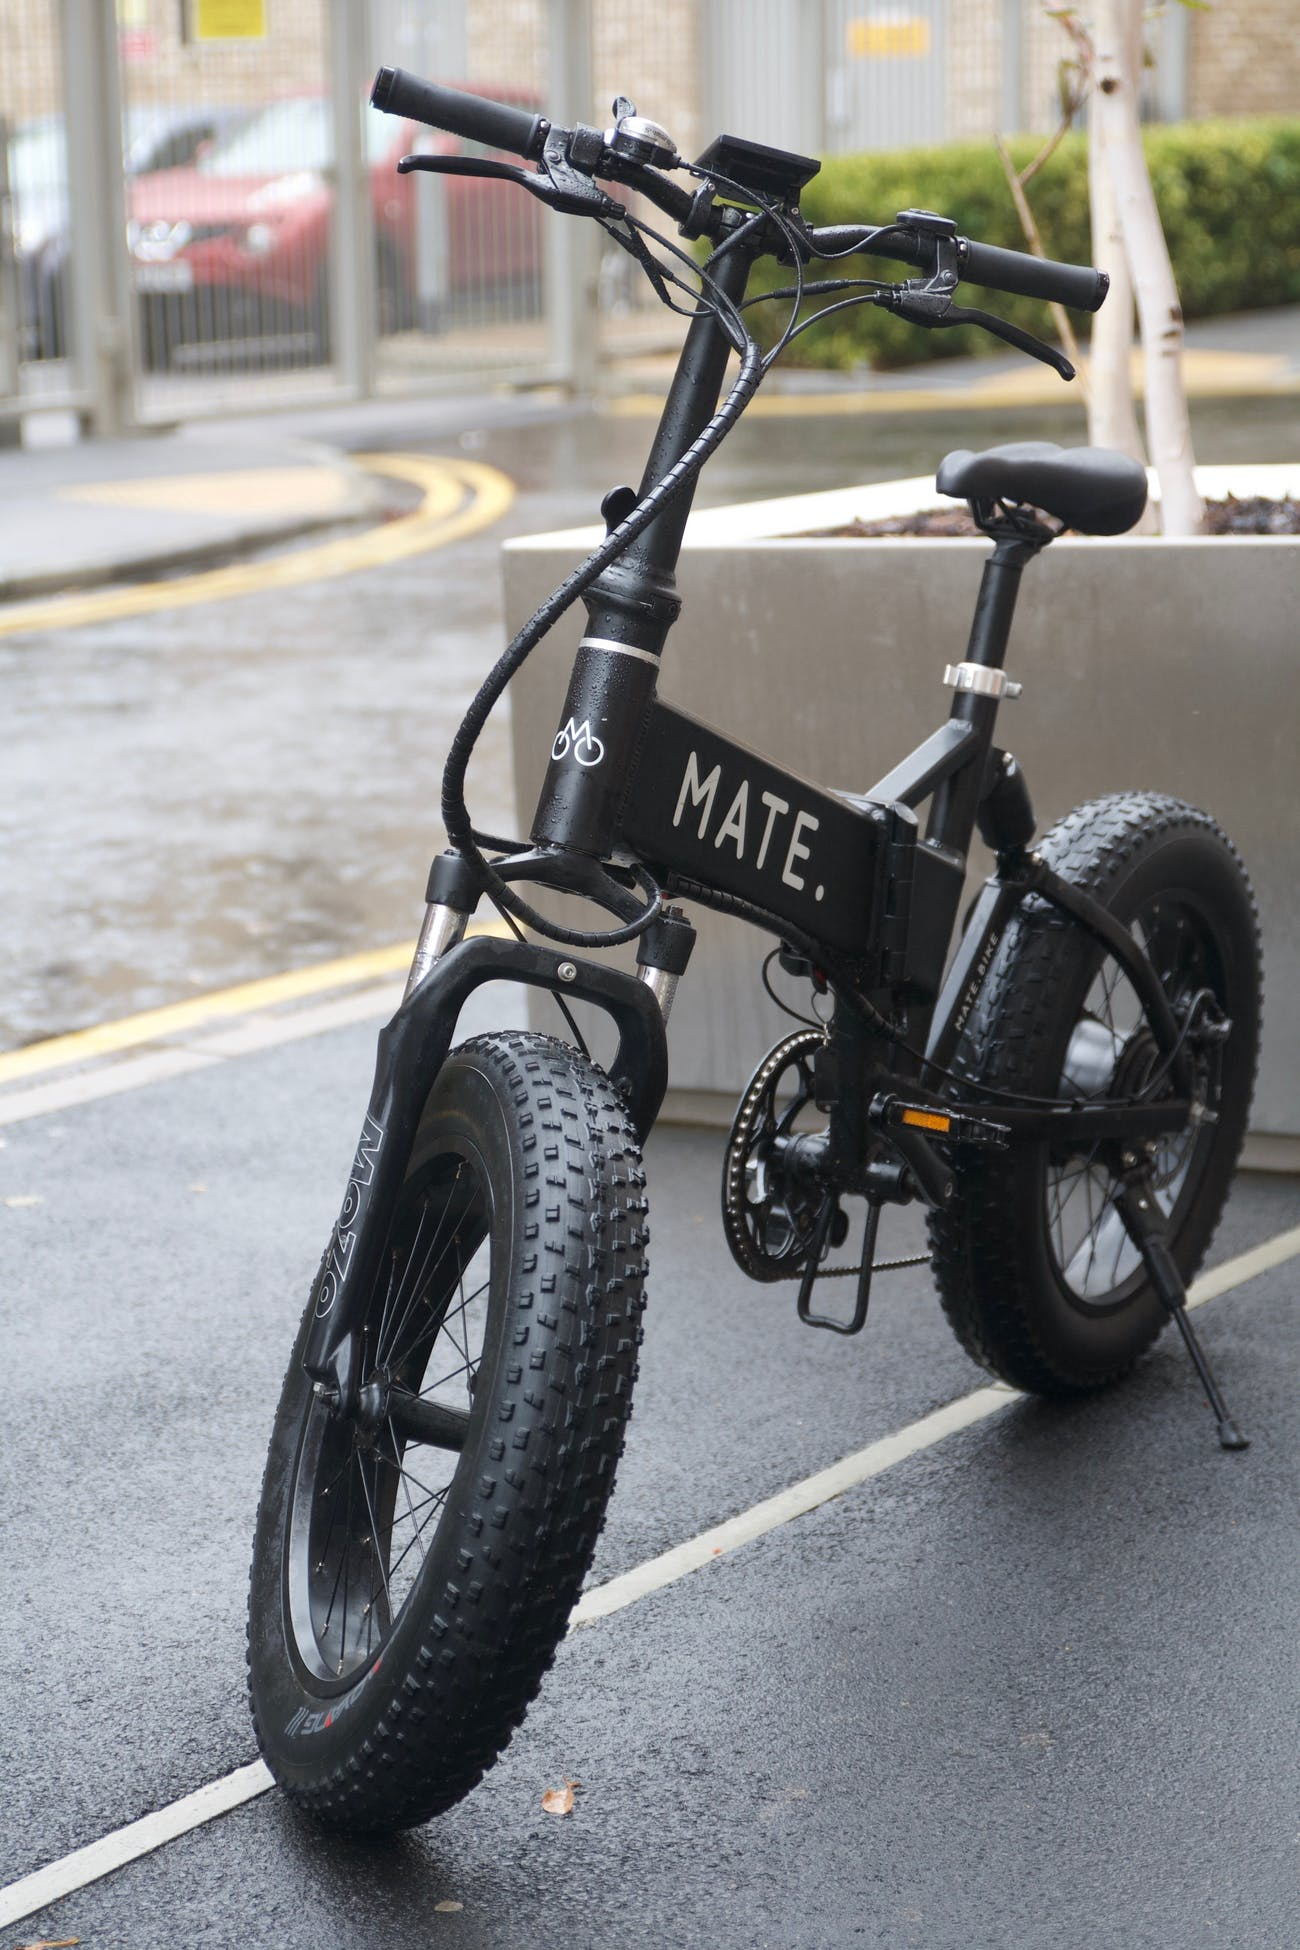 Best Electric Bike 2018: Hands-on With the Mate X, the 'Tesla of E